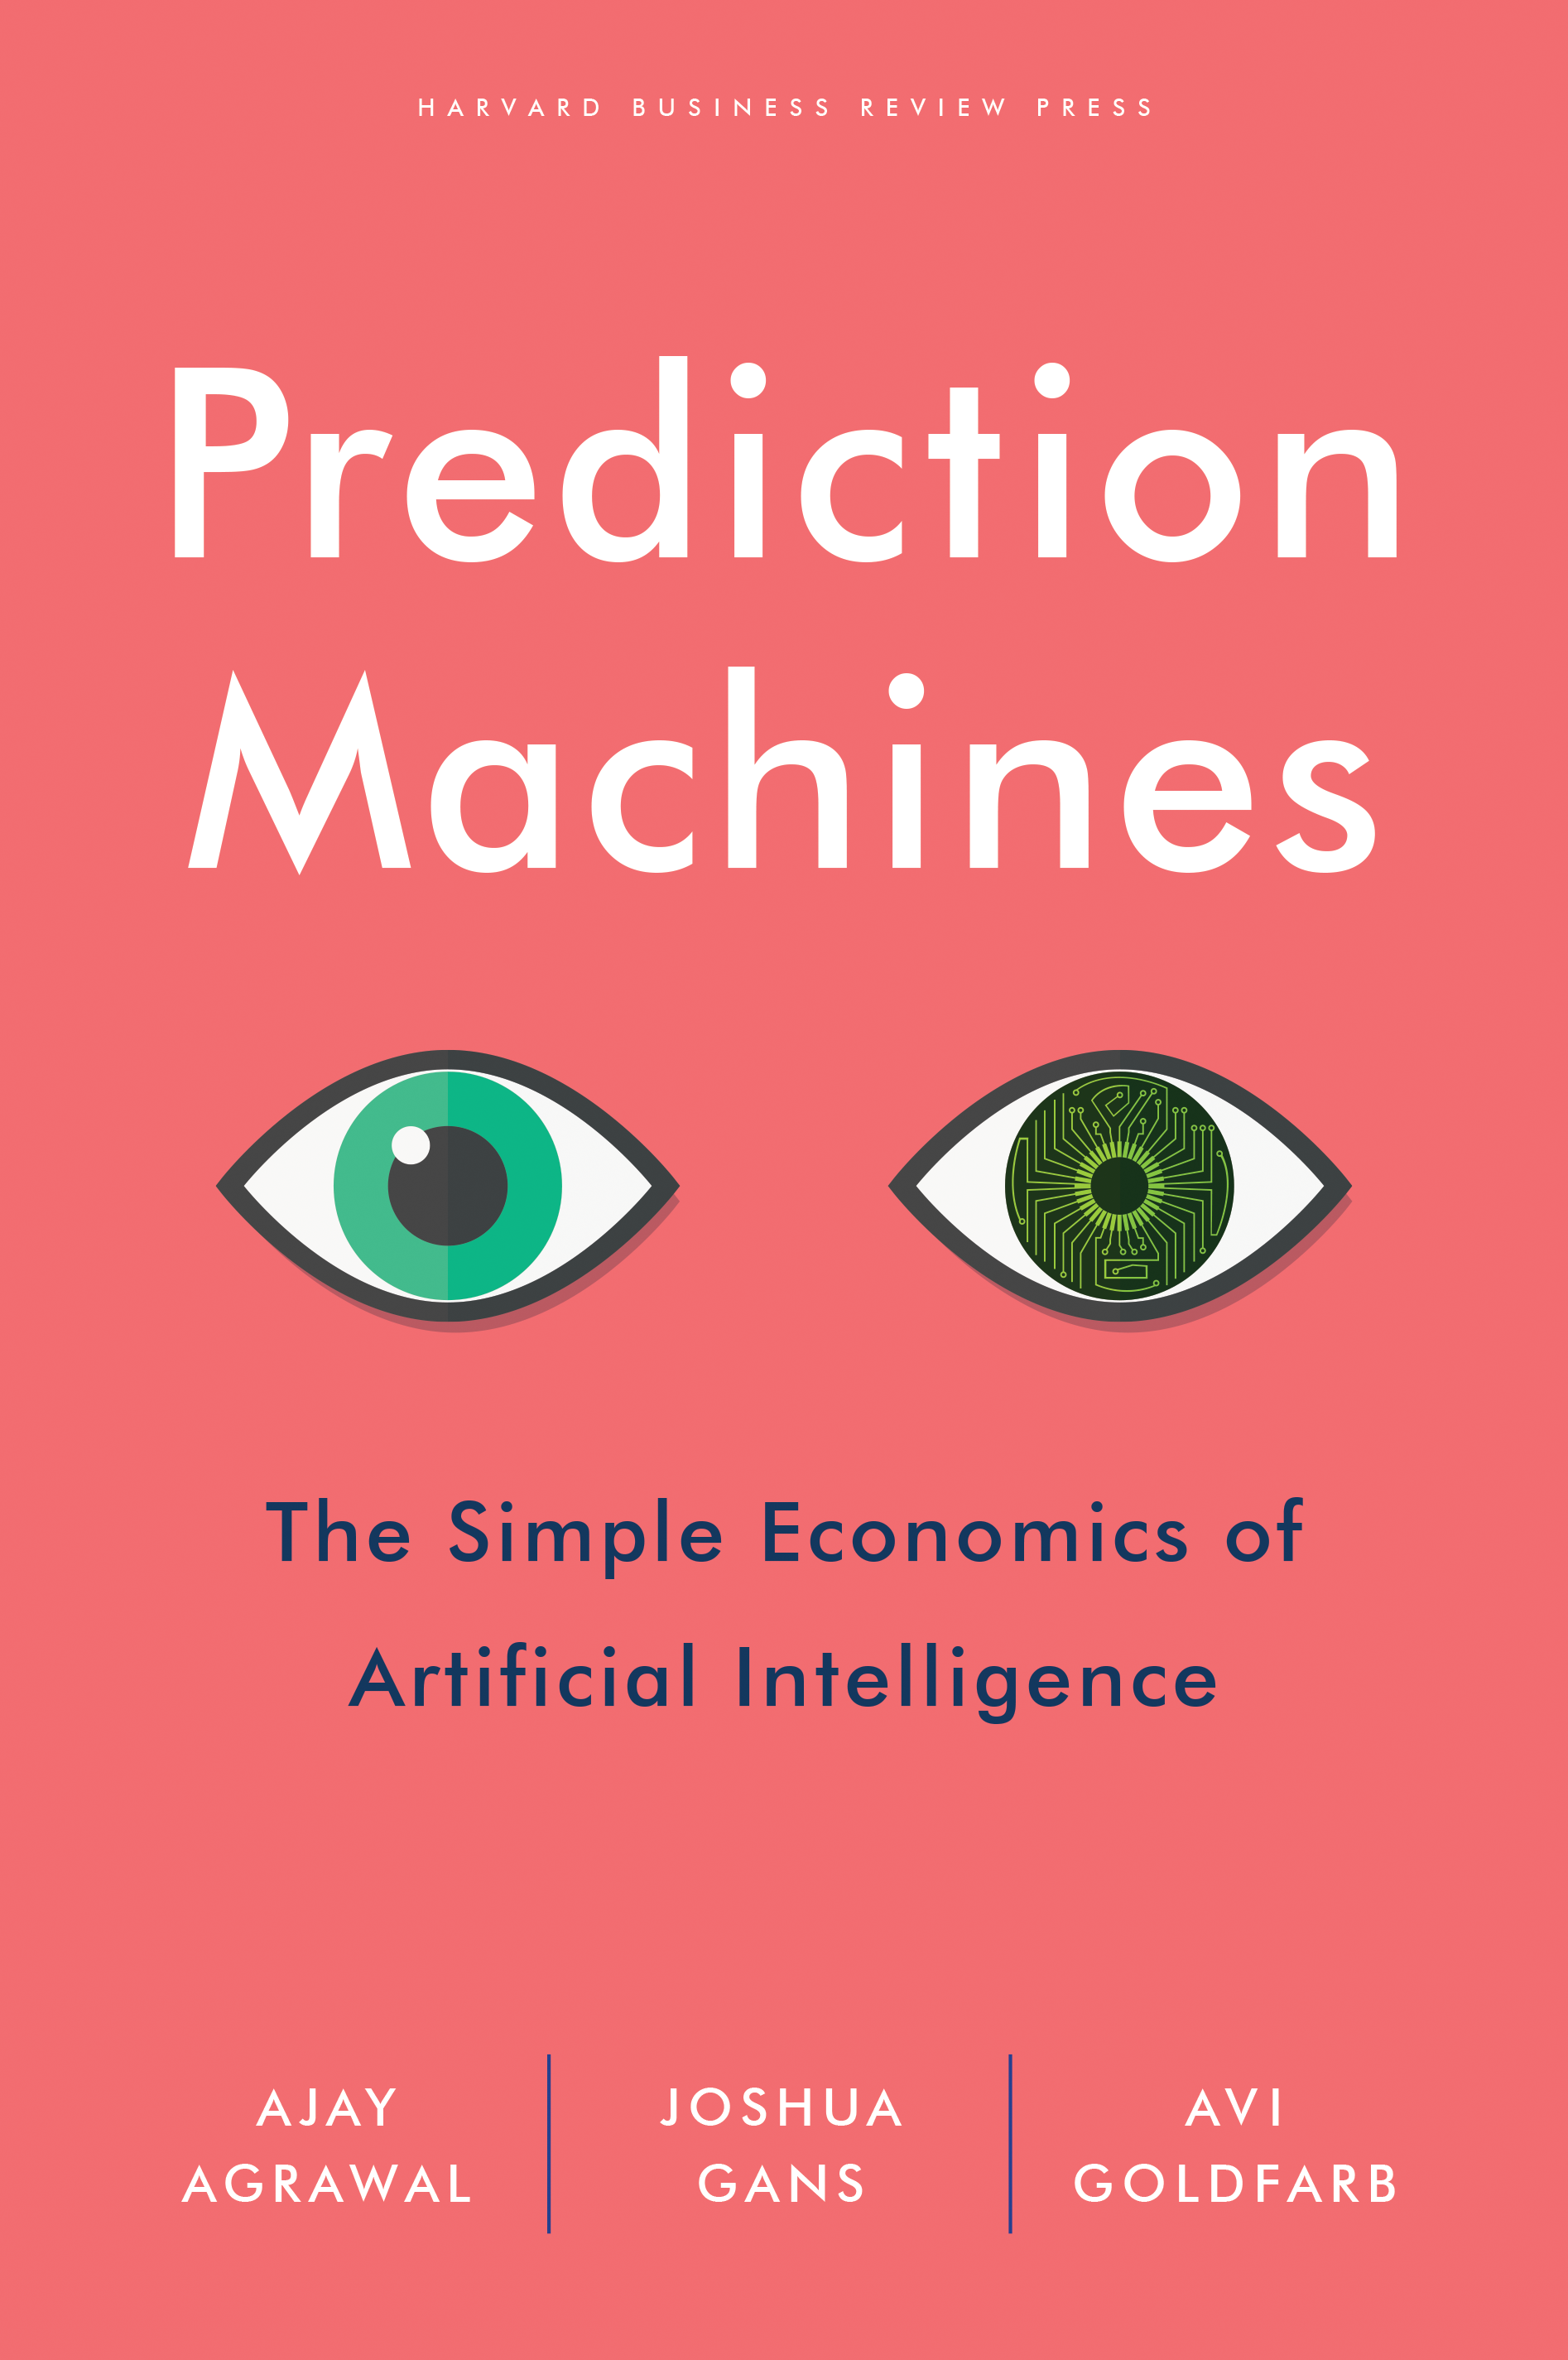 Prediction Machines - This book (published in April 2018 by Harvard Business Review Press) explores the simple economics of artificial intelligence.